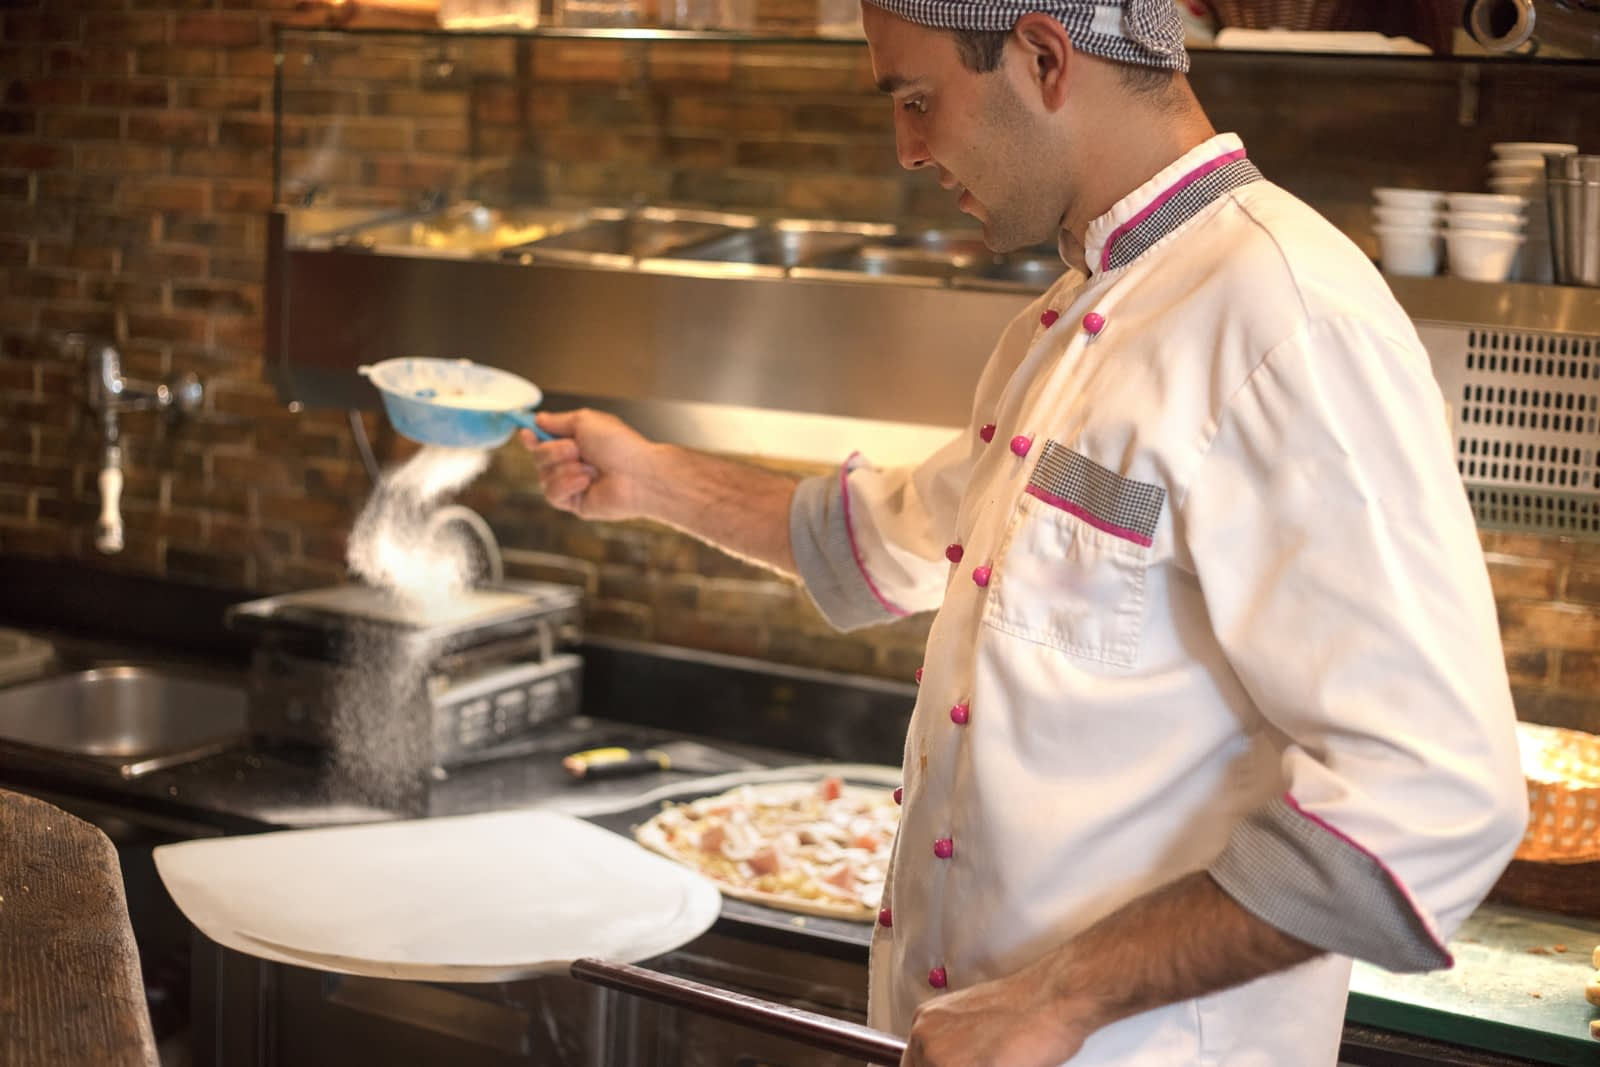 A restaurant chef sprinkles flour on pizza dough on pizza paddle